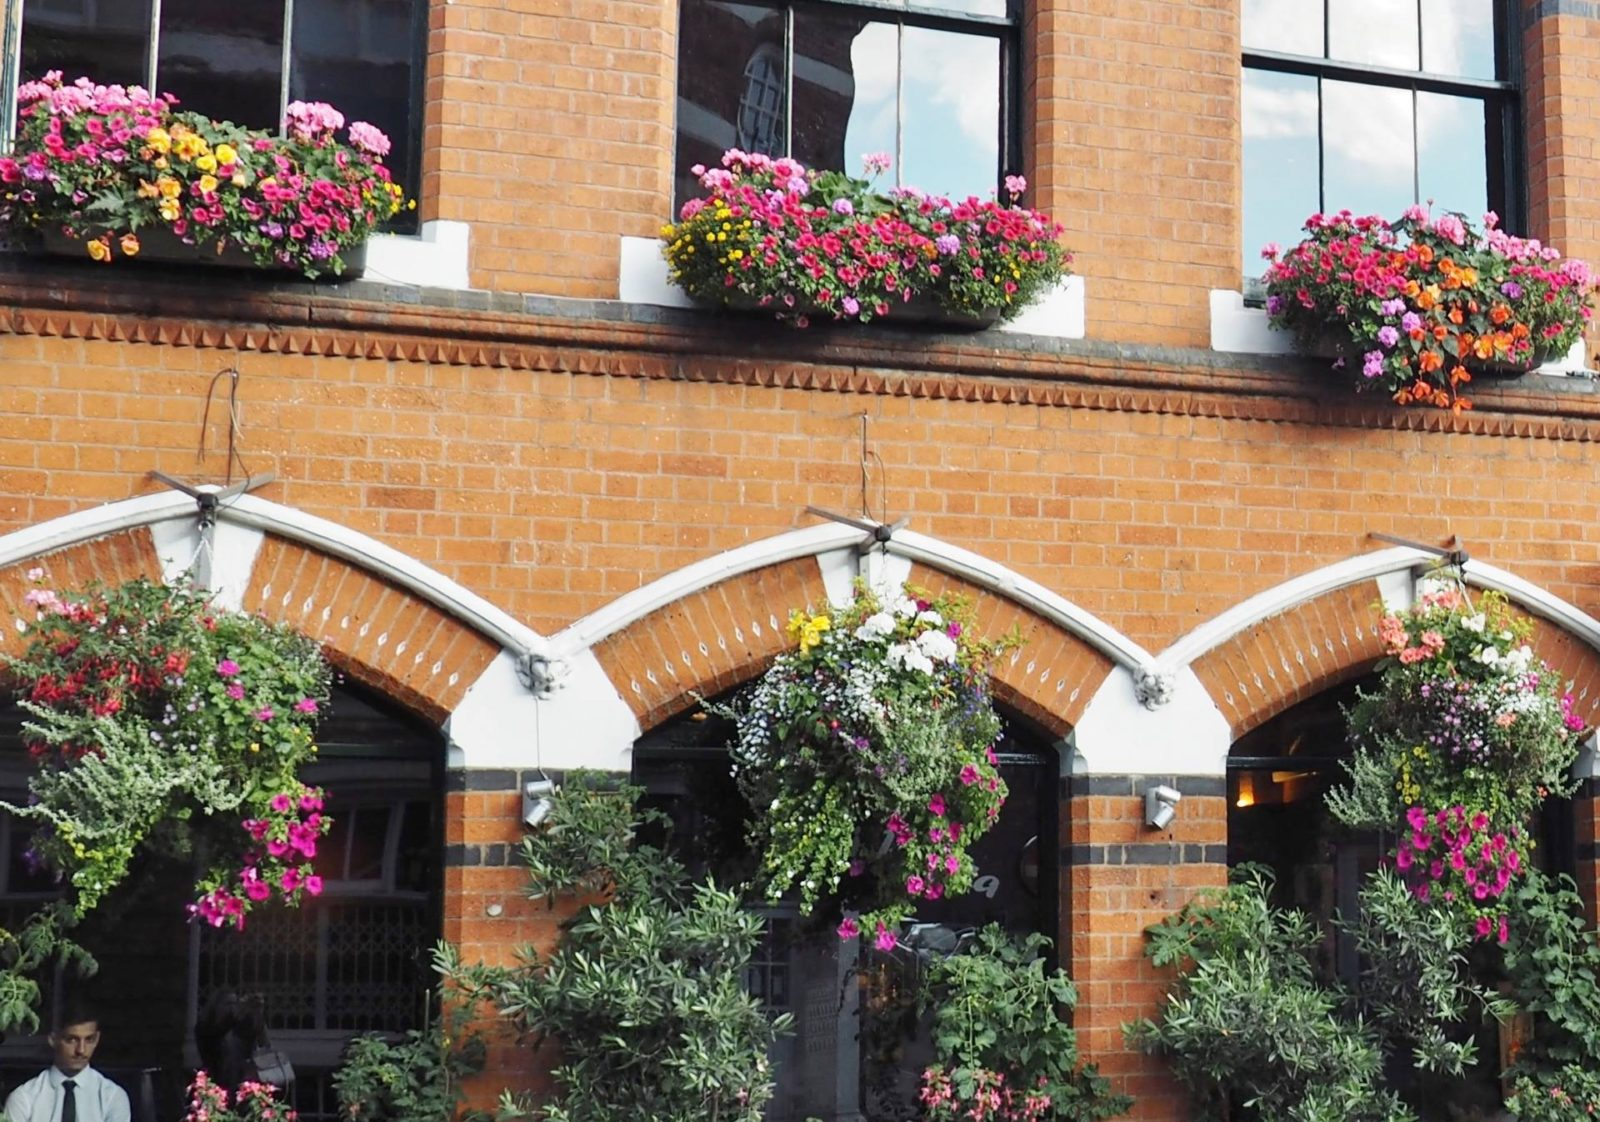 Pasta Di Piazza Building Plants and Flowers